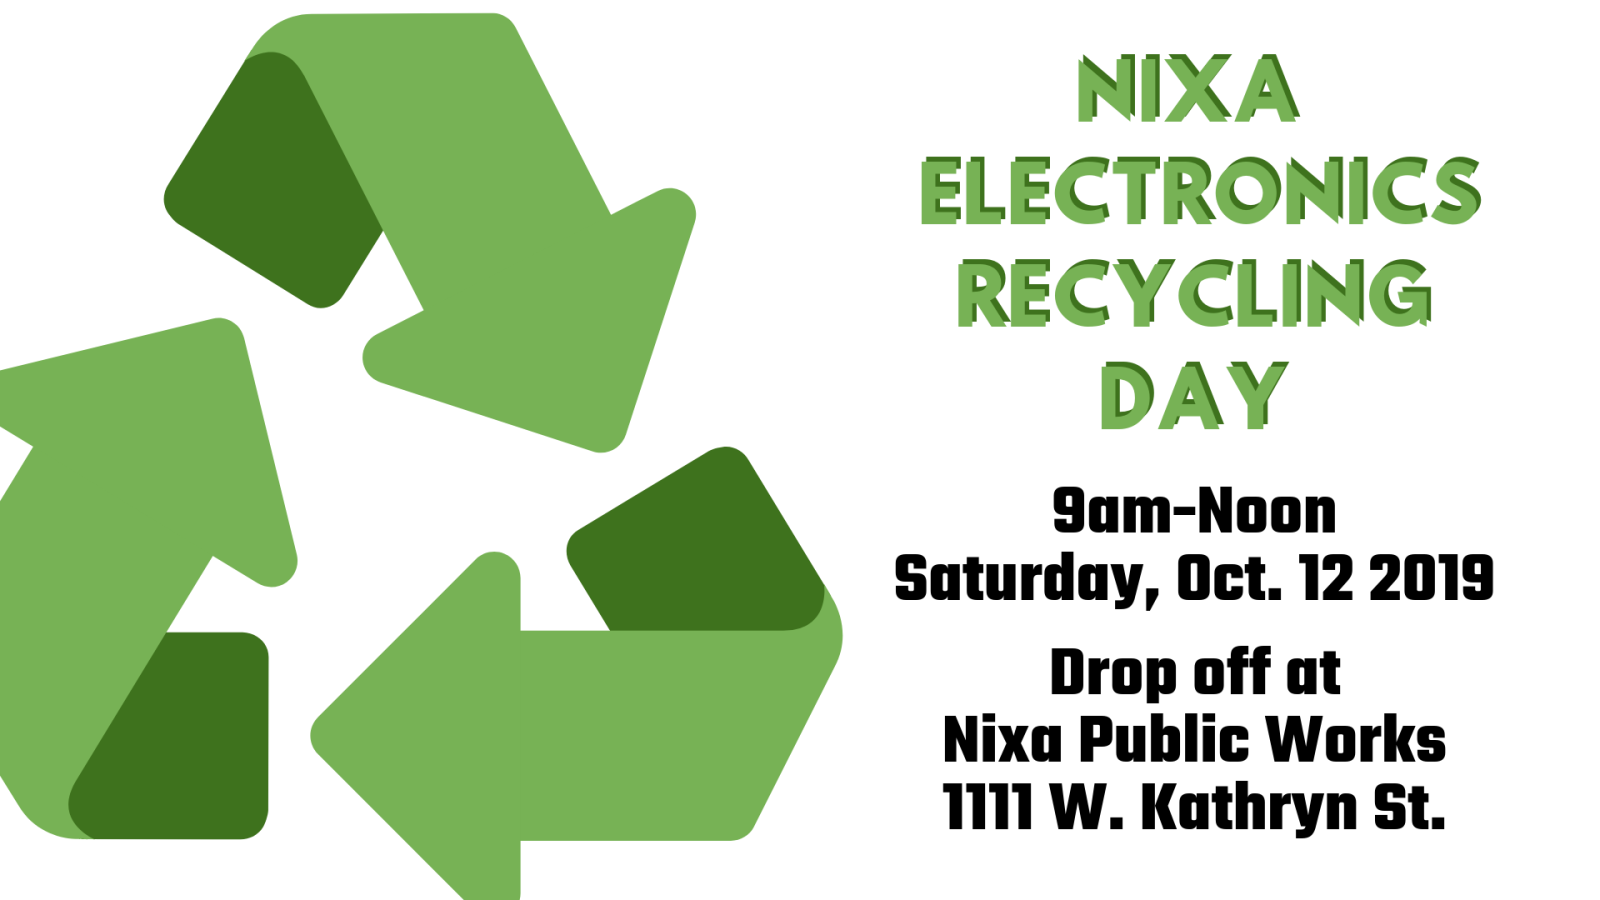 2019 Electronics Recycling Day 16x9